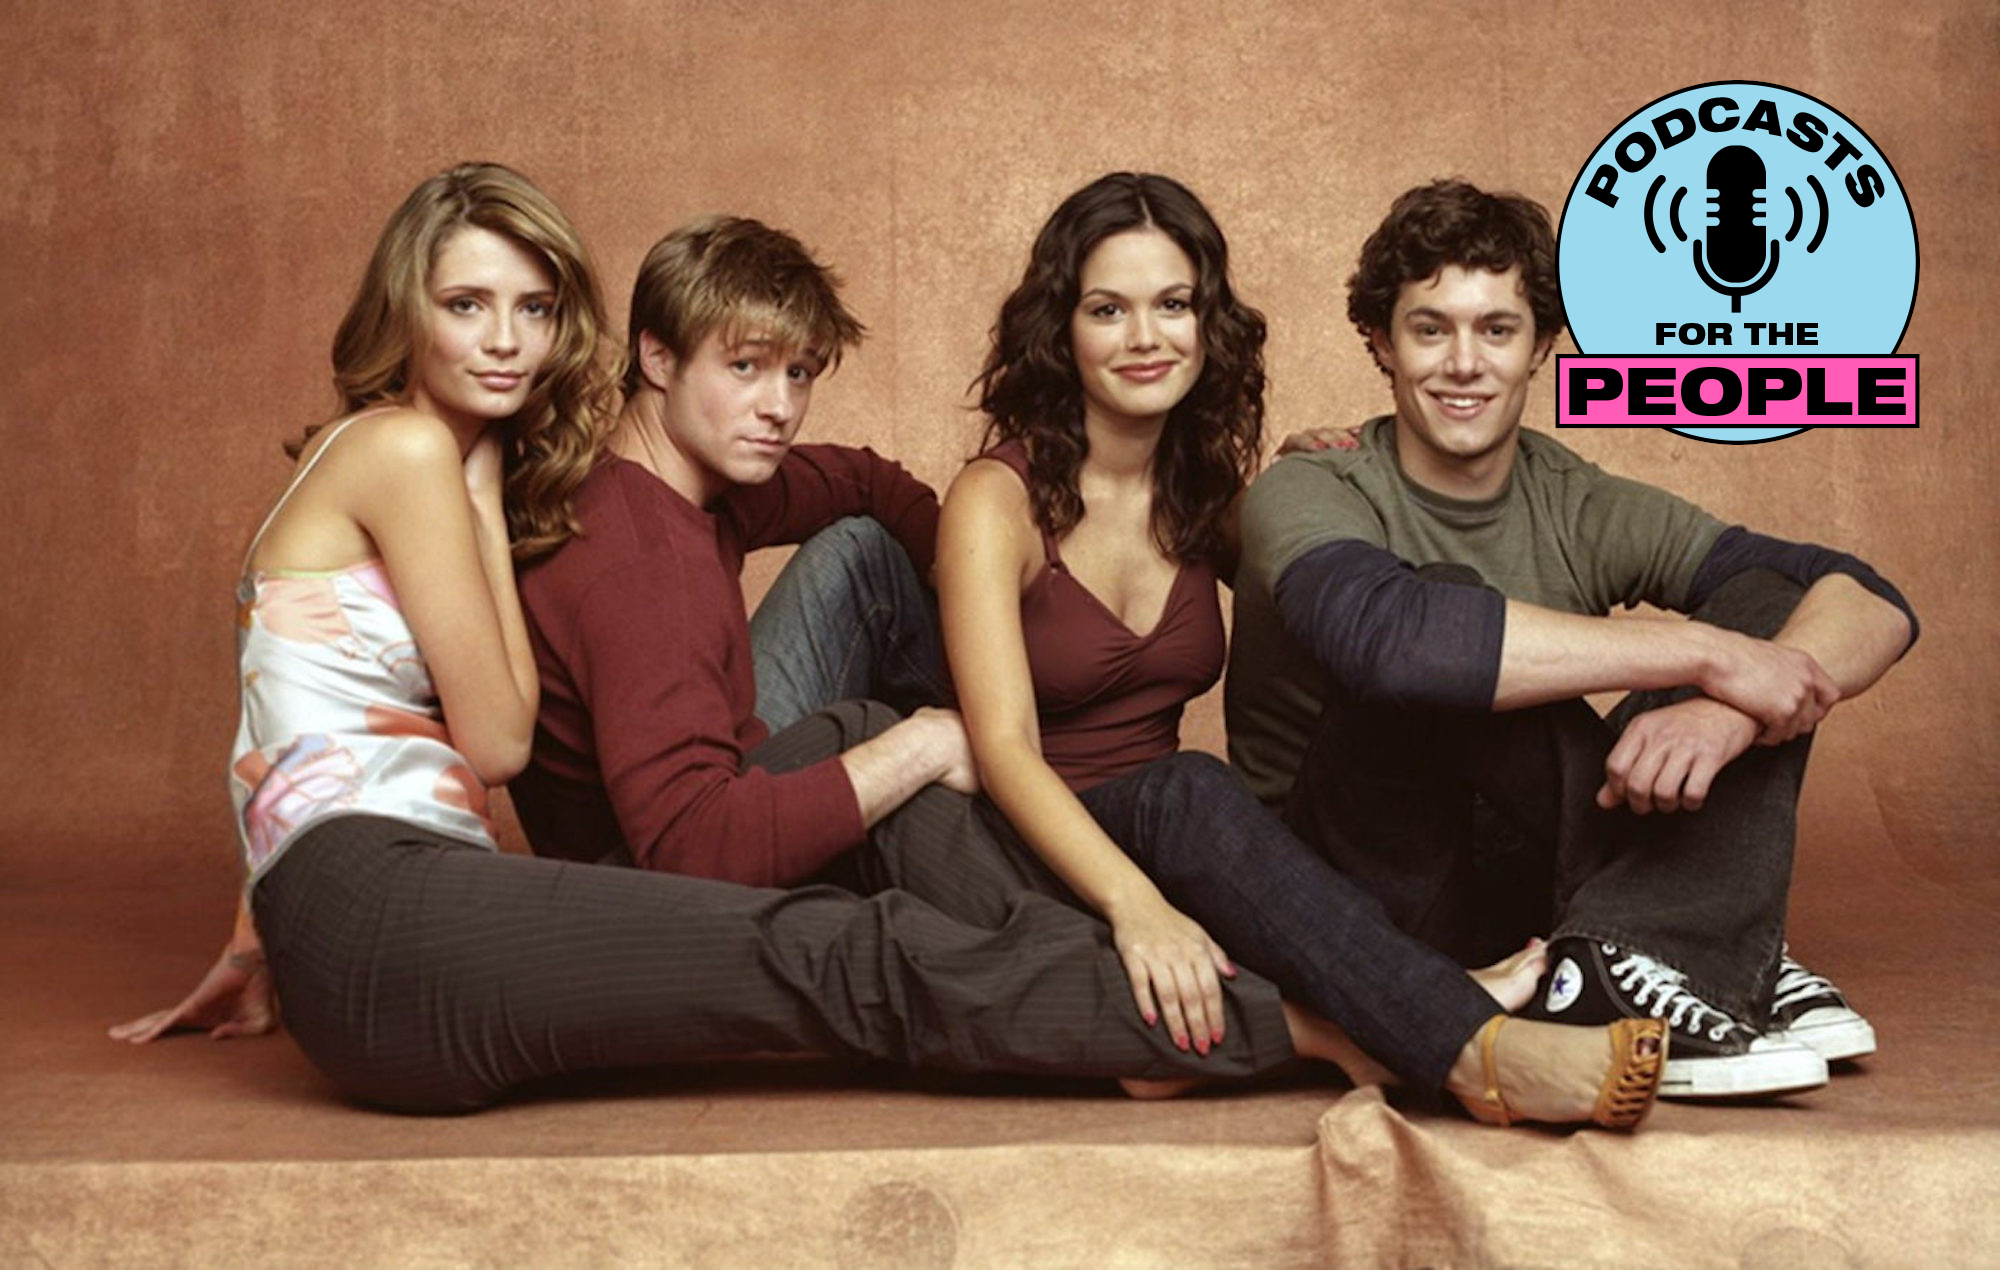 Greg Cochrane's Podcasts For The People #11 – The O.C. revisited and a Childish Gambino musical | NME